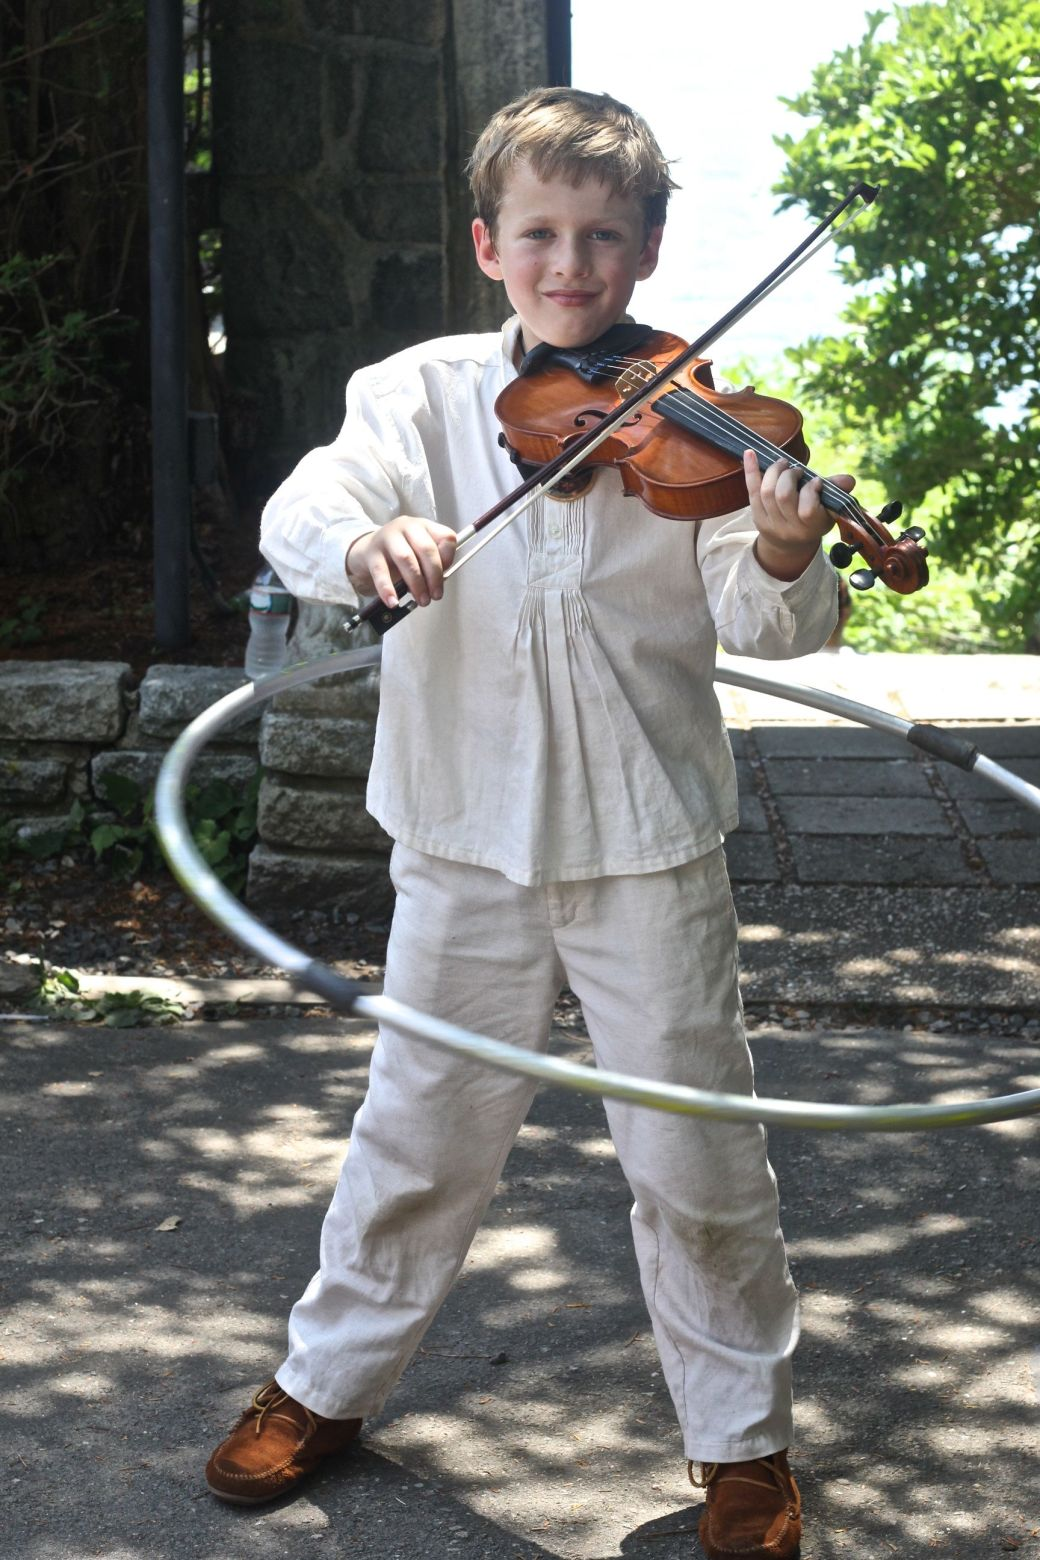 gloucester hammond castle renaissance fair boy playing the violin with hula hoop